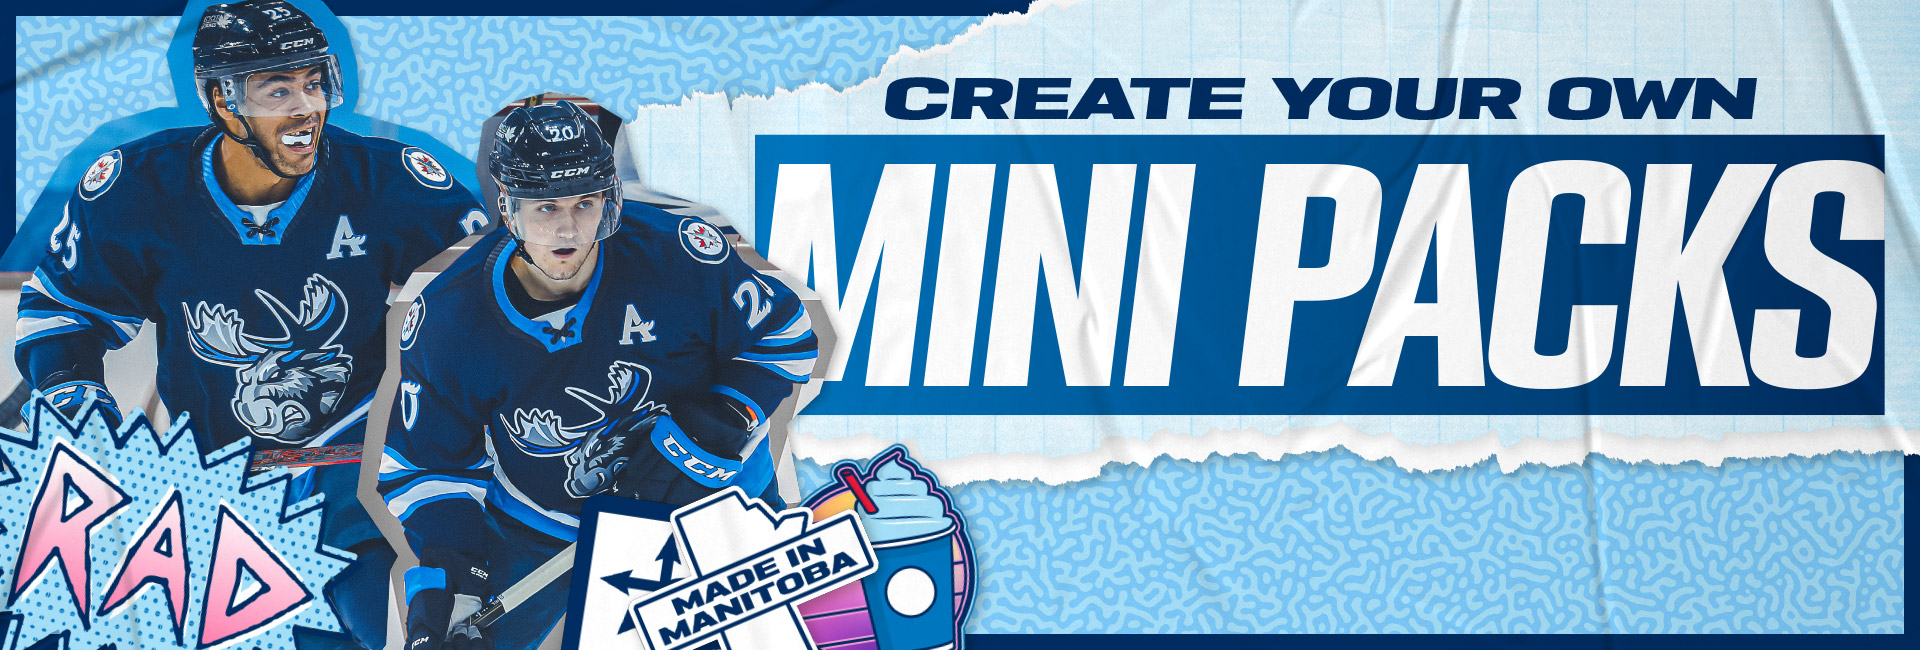 Create your own Mini Pack